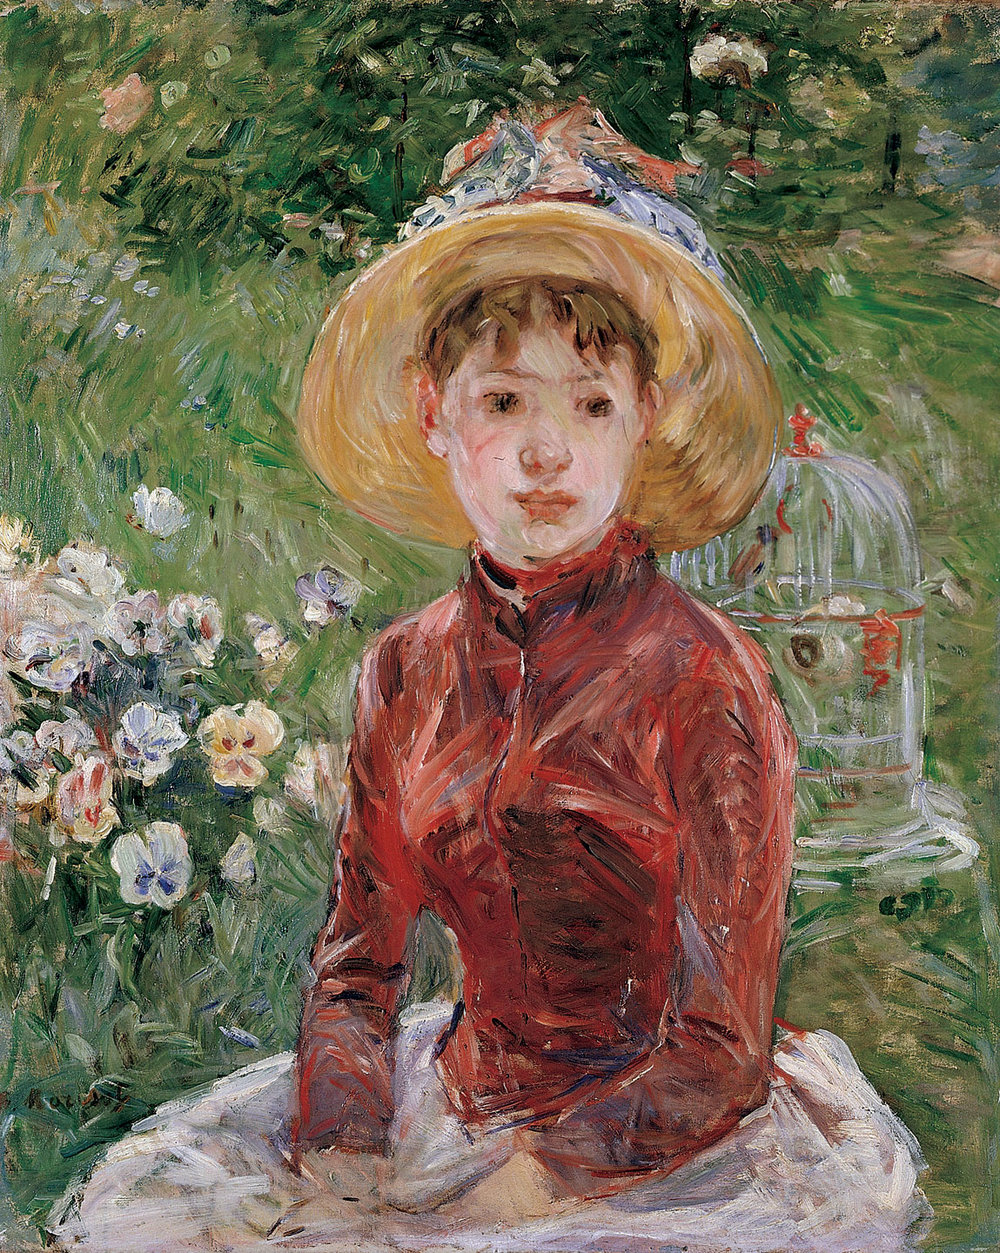 YOUNG GIRL ON THE GRASS by Berthe Morisot, oil canvas, 74 x 60 centimeters, 1885.  Courtesy of Ordrupgaard Museum .